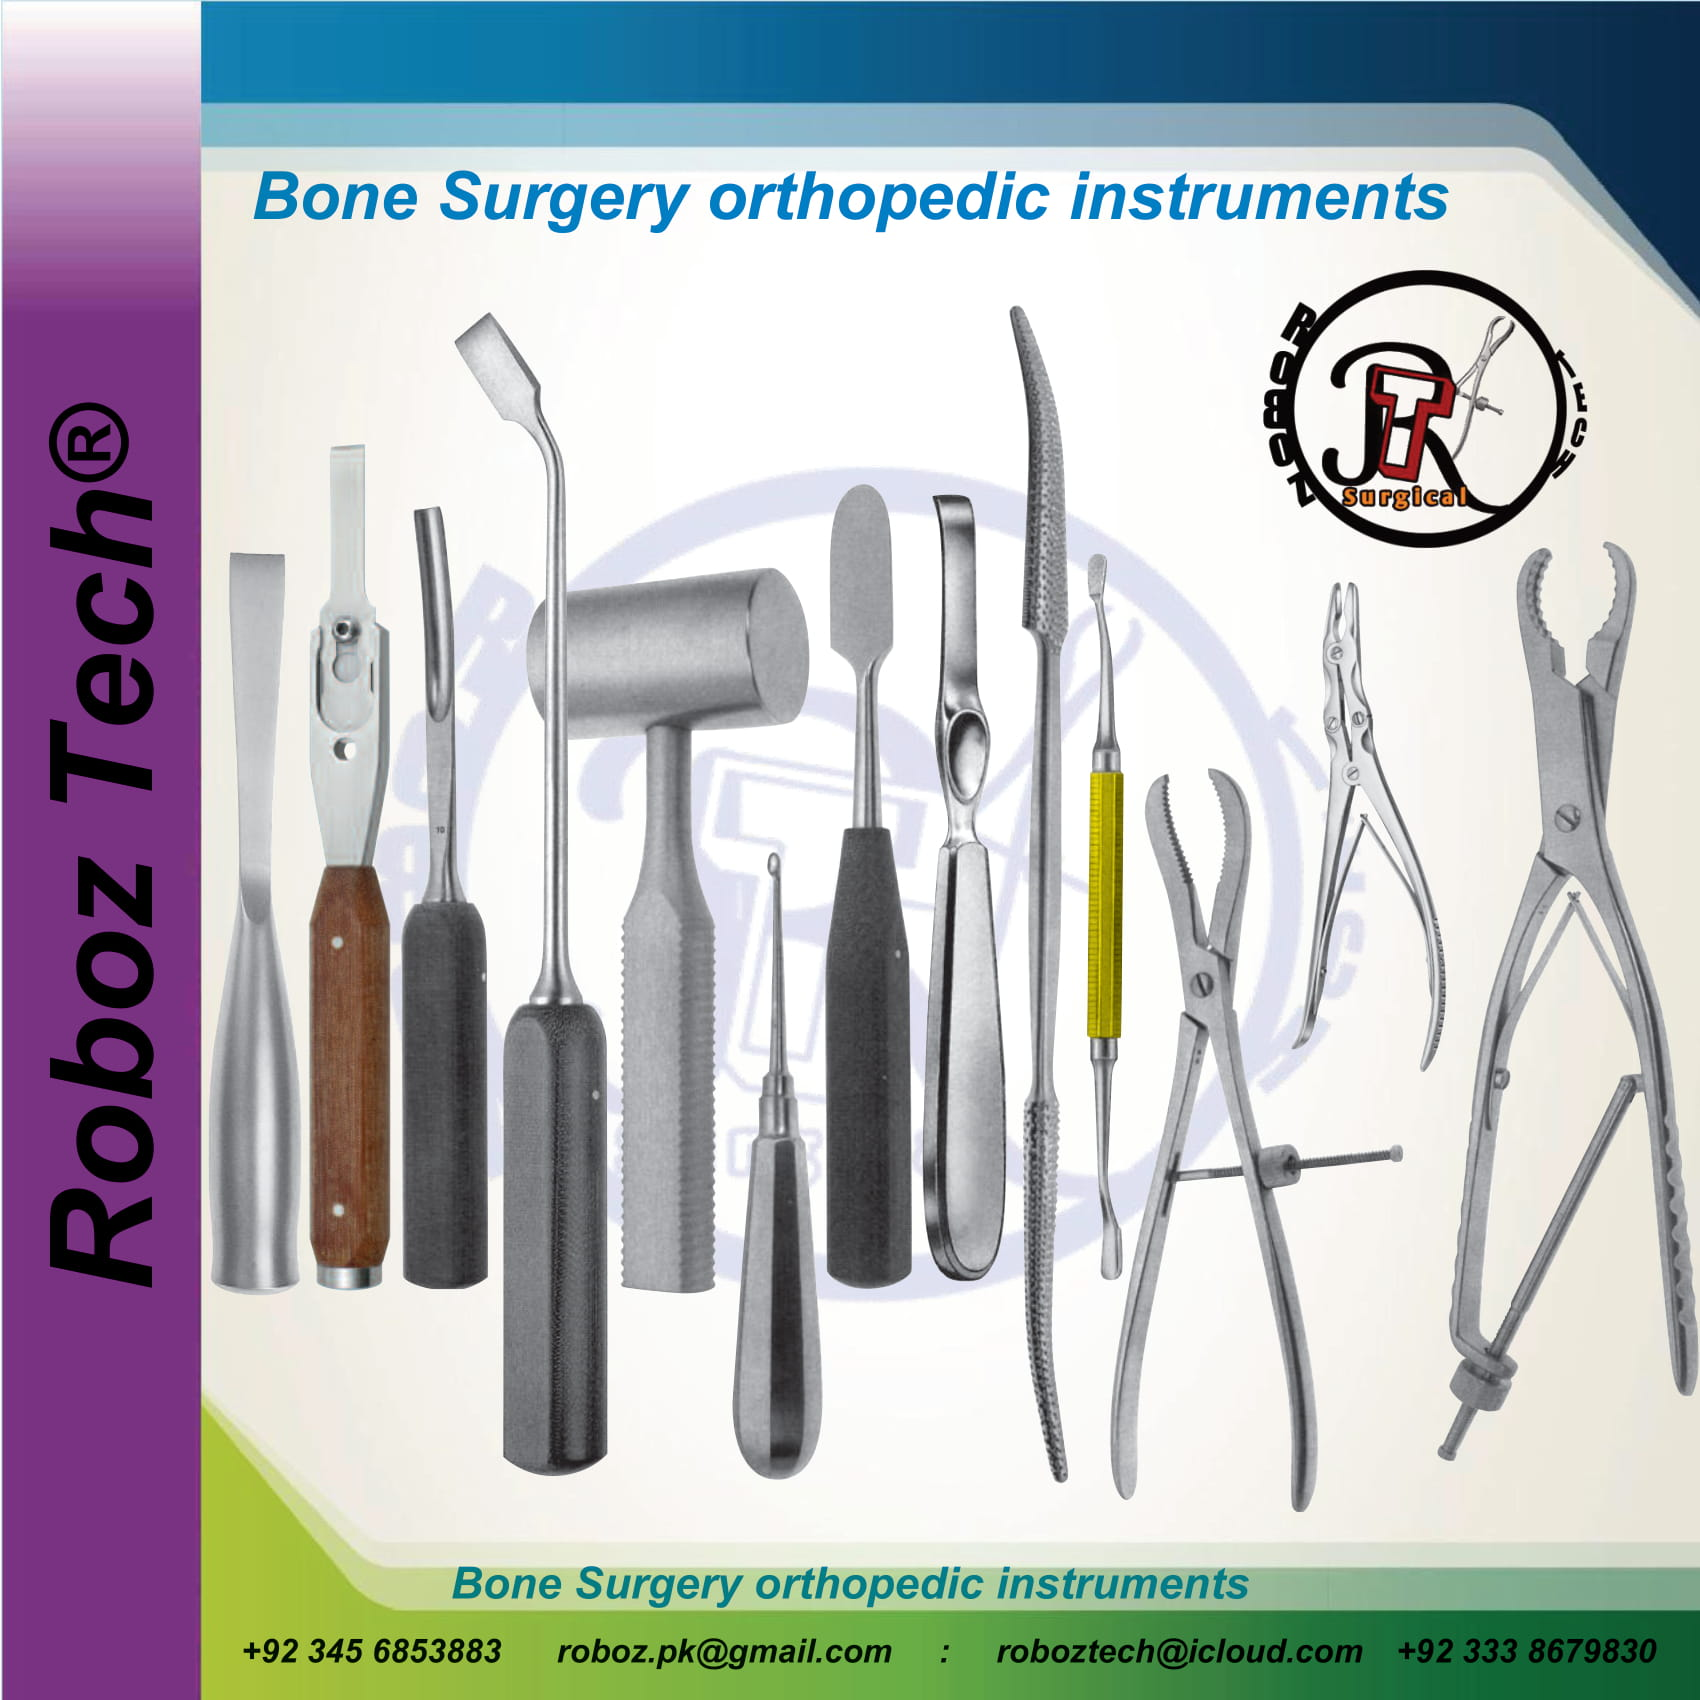 Bone Surgery orthopedic instruments-1